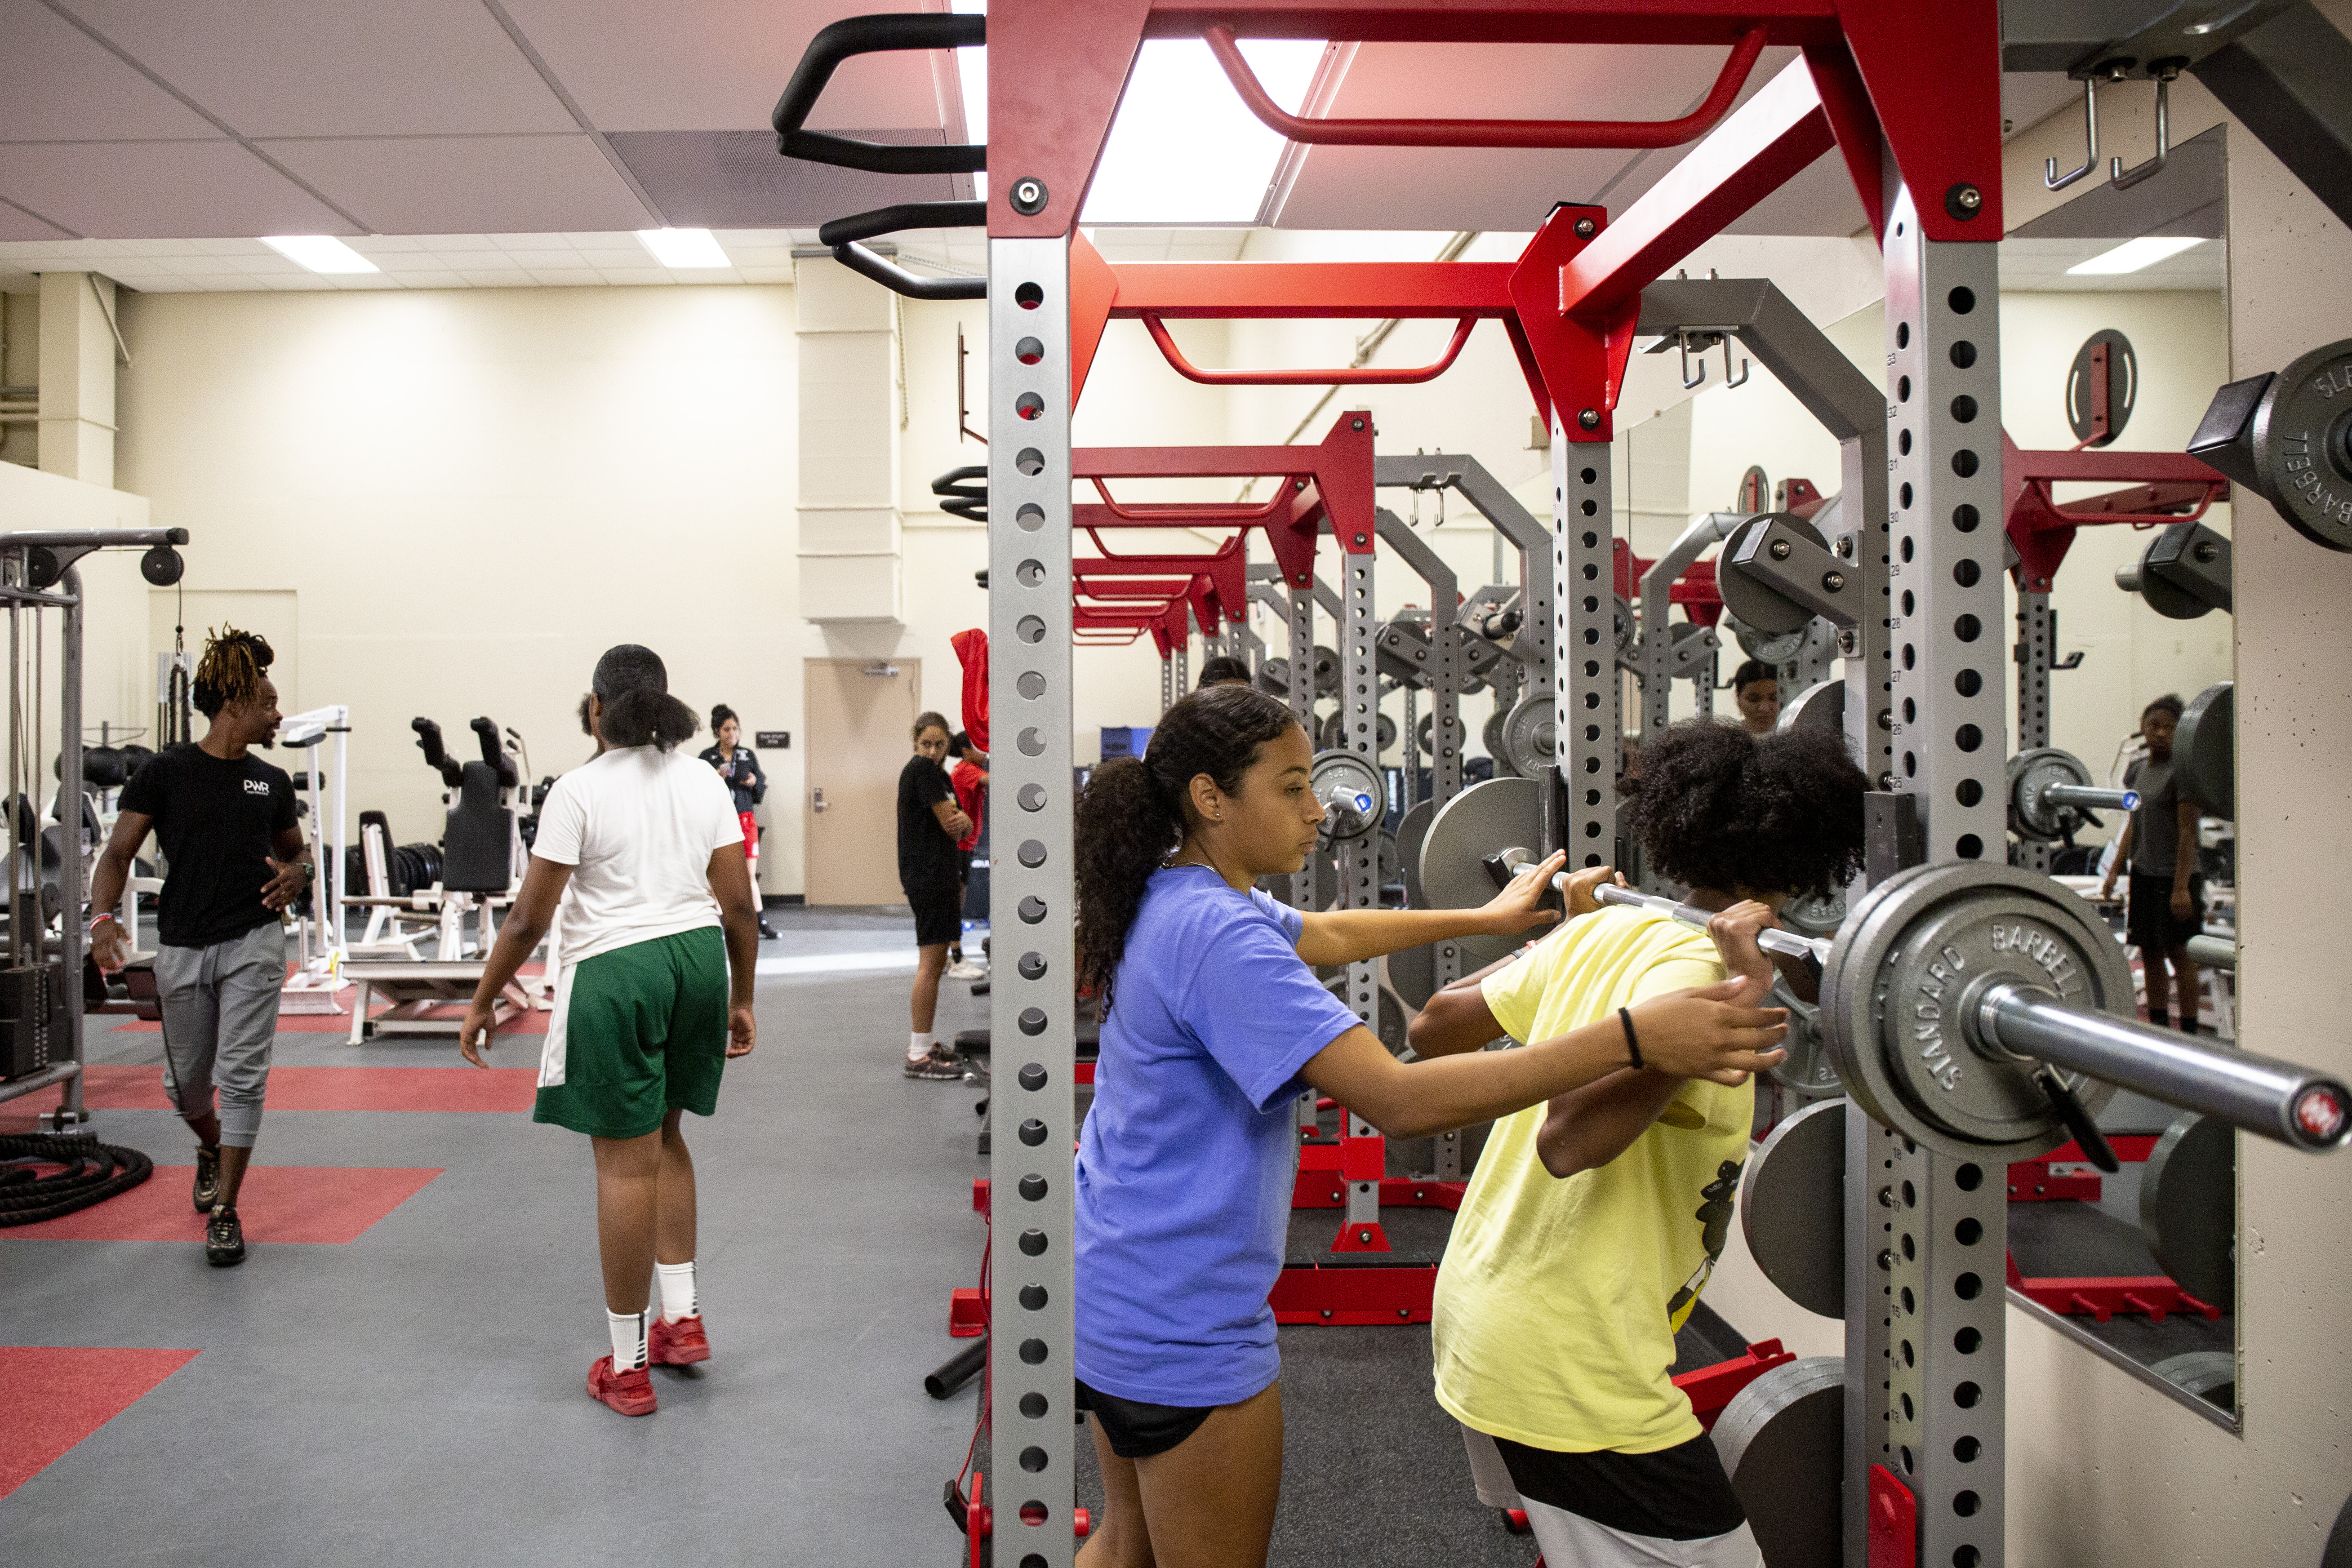 youths training in the gym